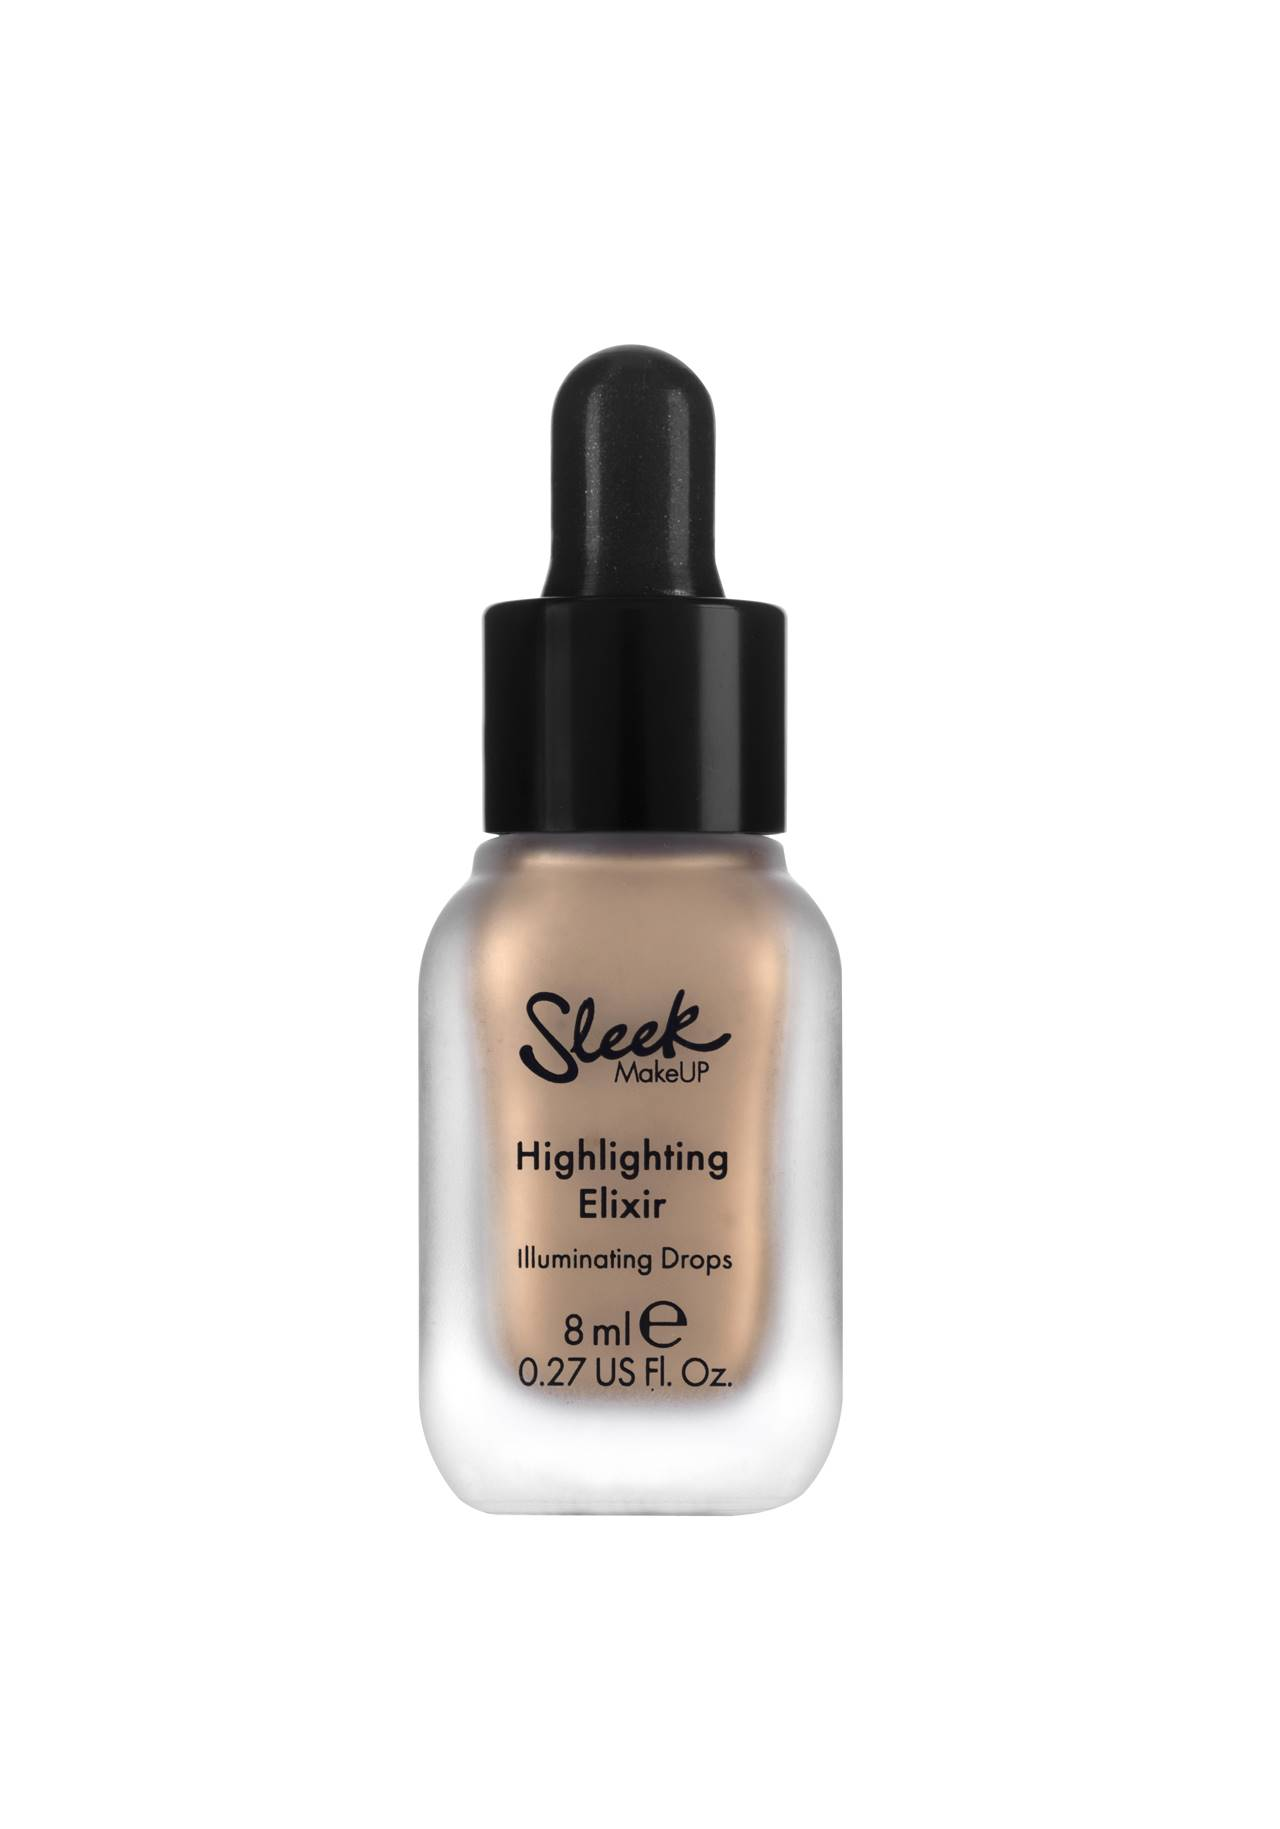 Gotas iluminadoras Highlighting Elixir de Sleek